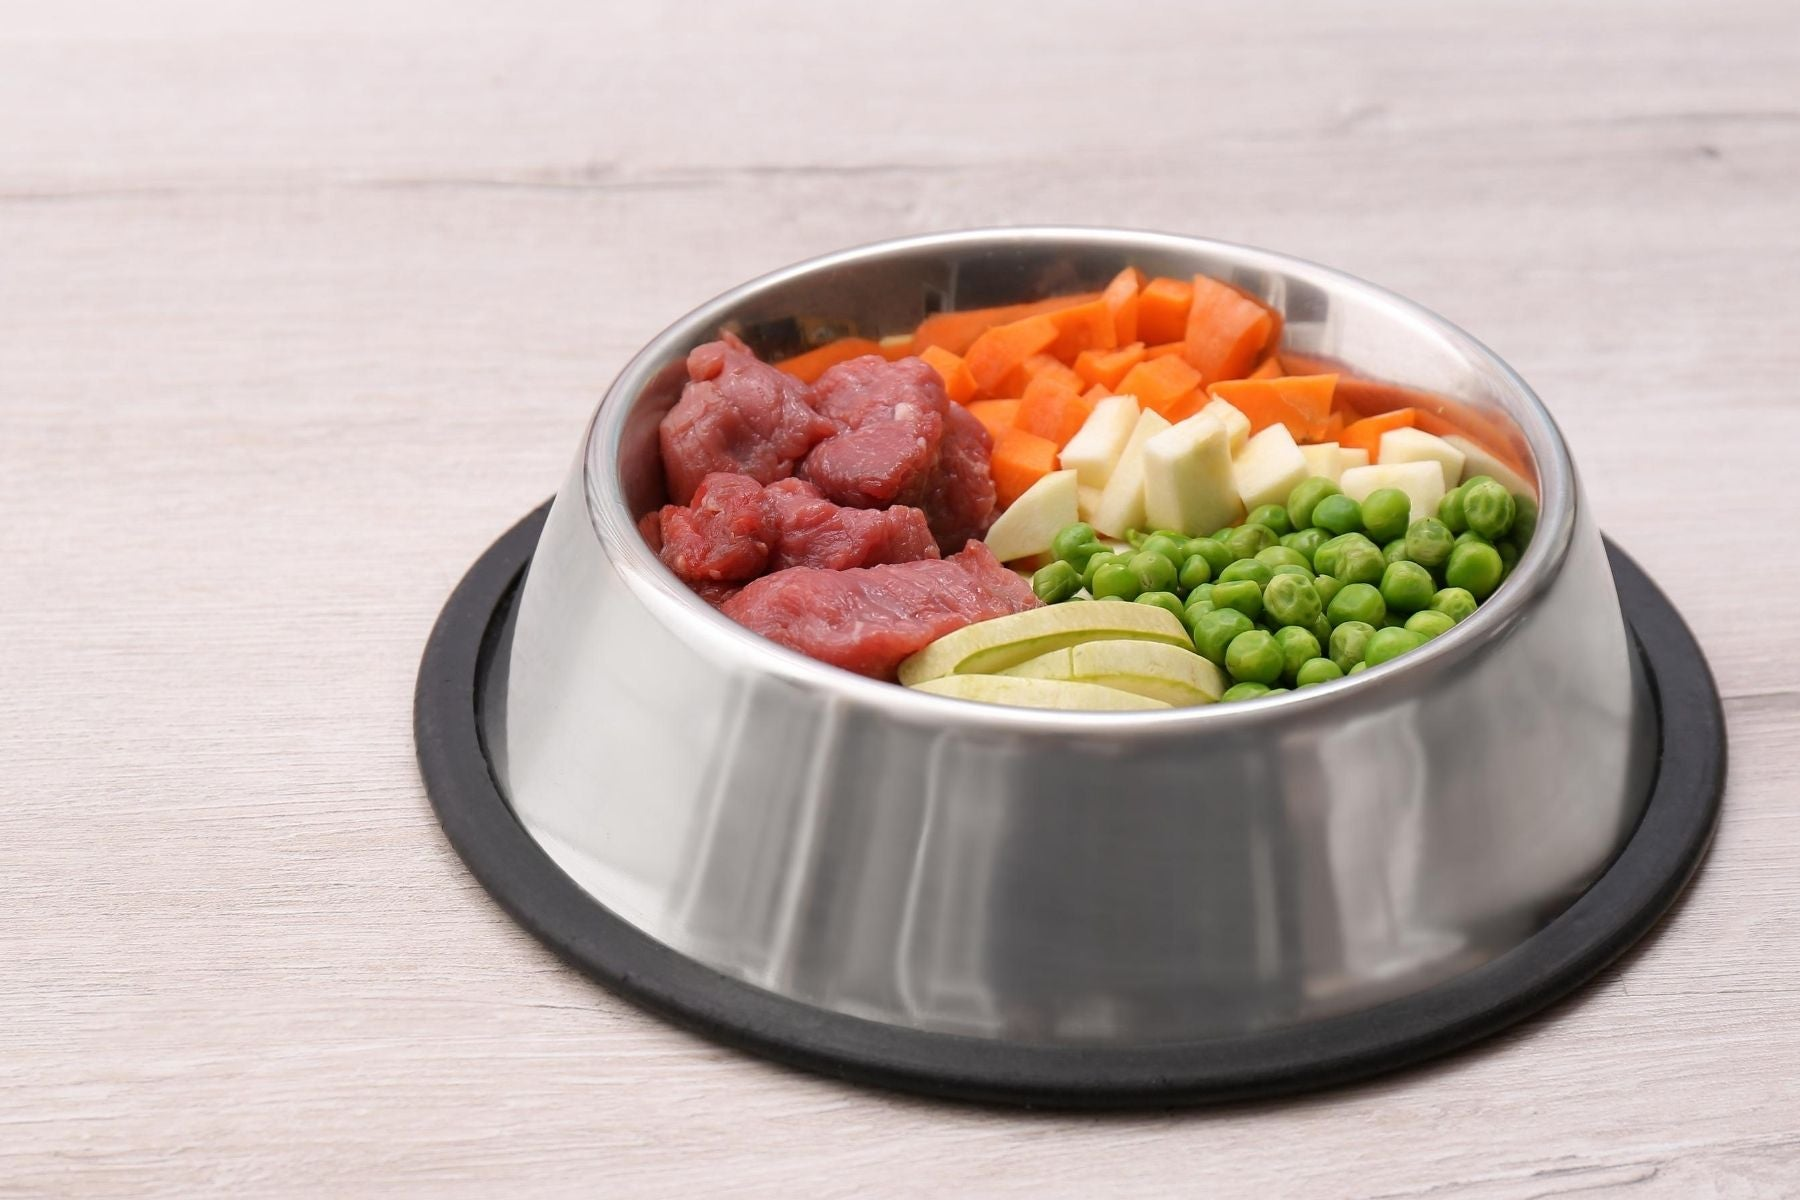 Meat and vegetables for homemade dog food dinner wellbeing for dogs